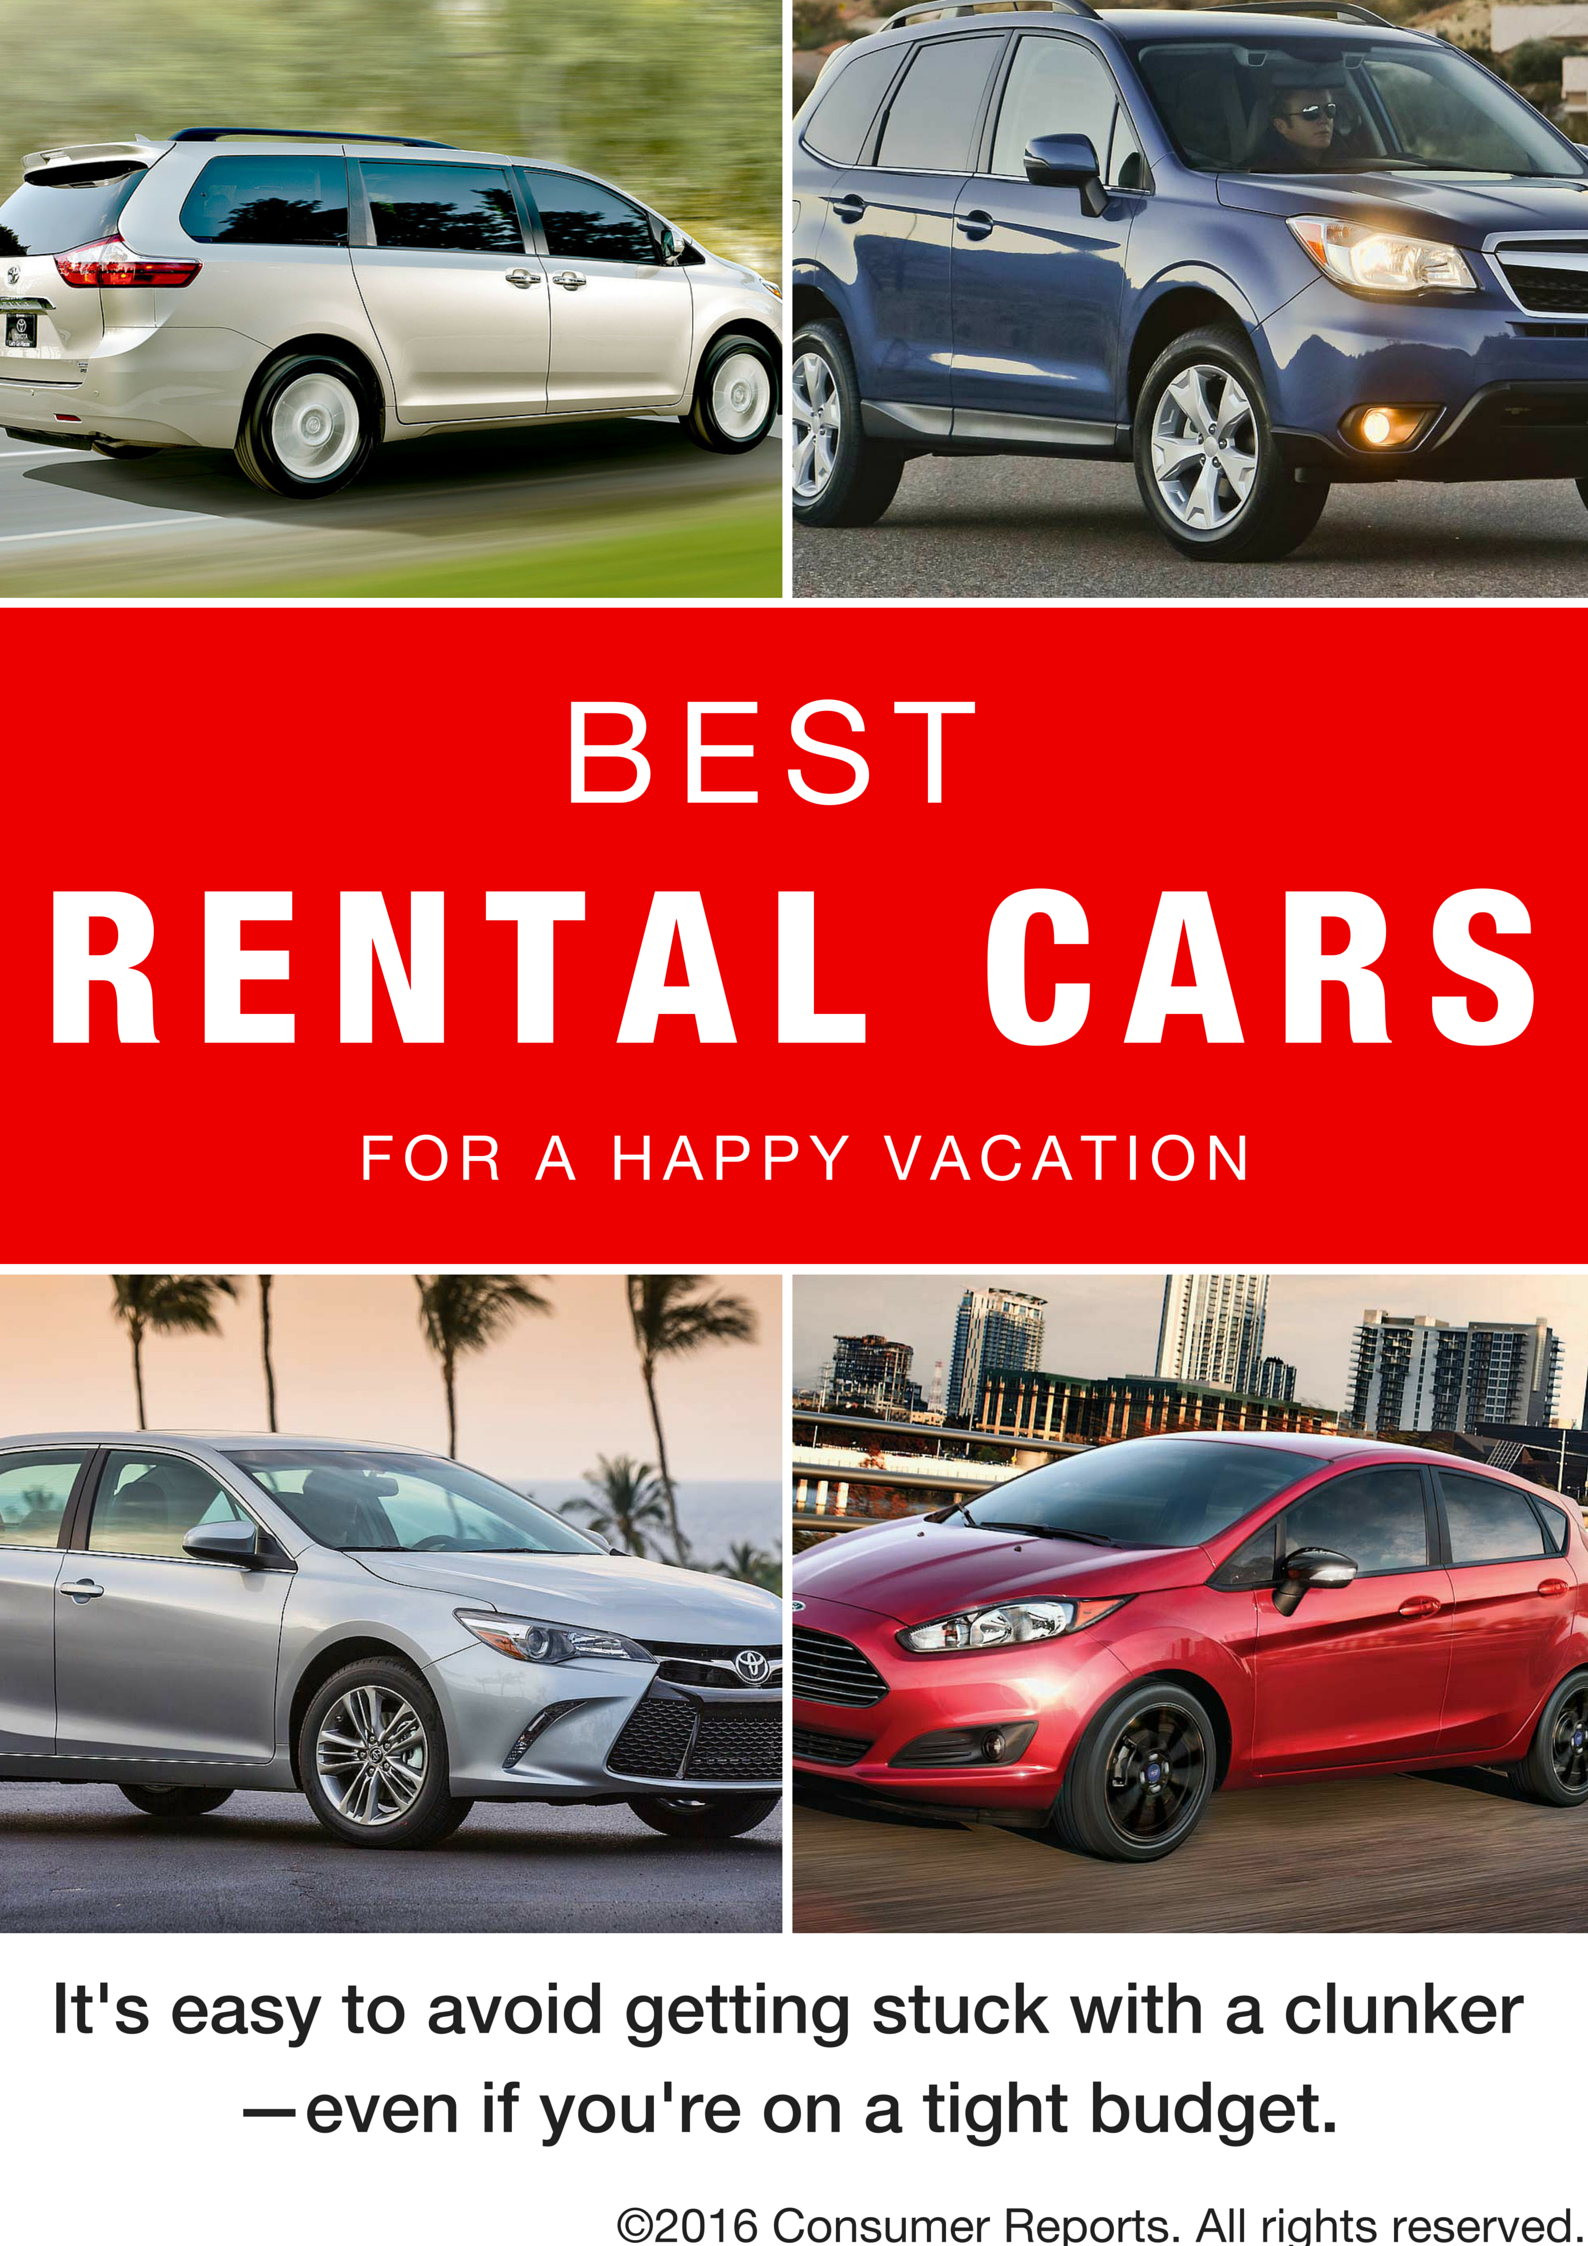 Best Rental Cars For A Happy Vacation In 2020 Car Rental Vacation Cheap Travel